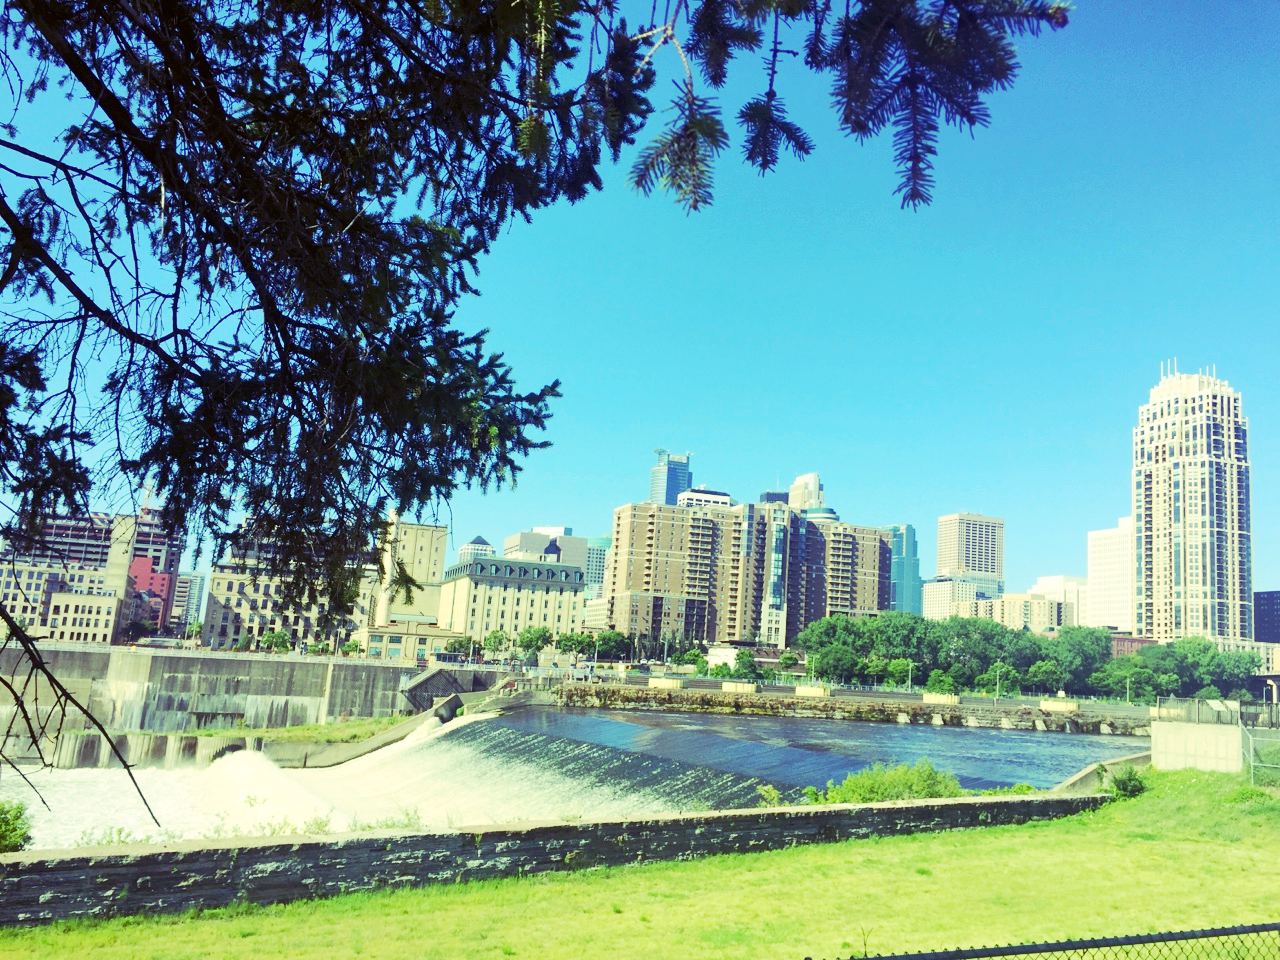 Saint Anthony Falls and downtown view from the Xcel Energy Power Park